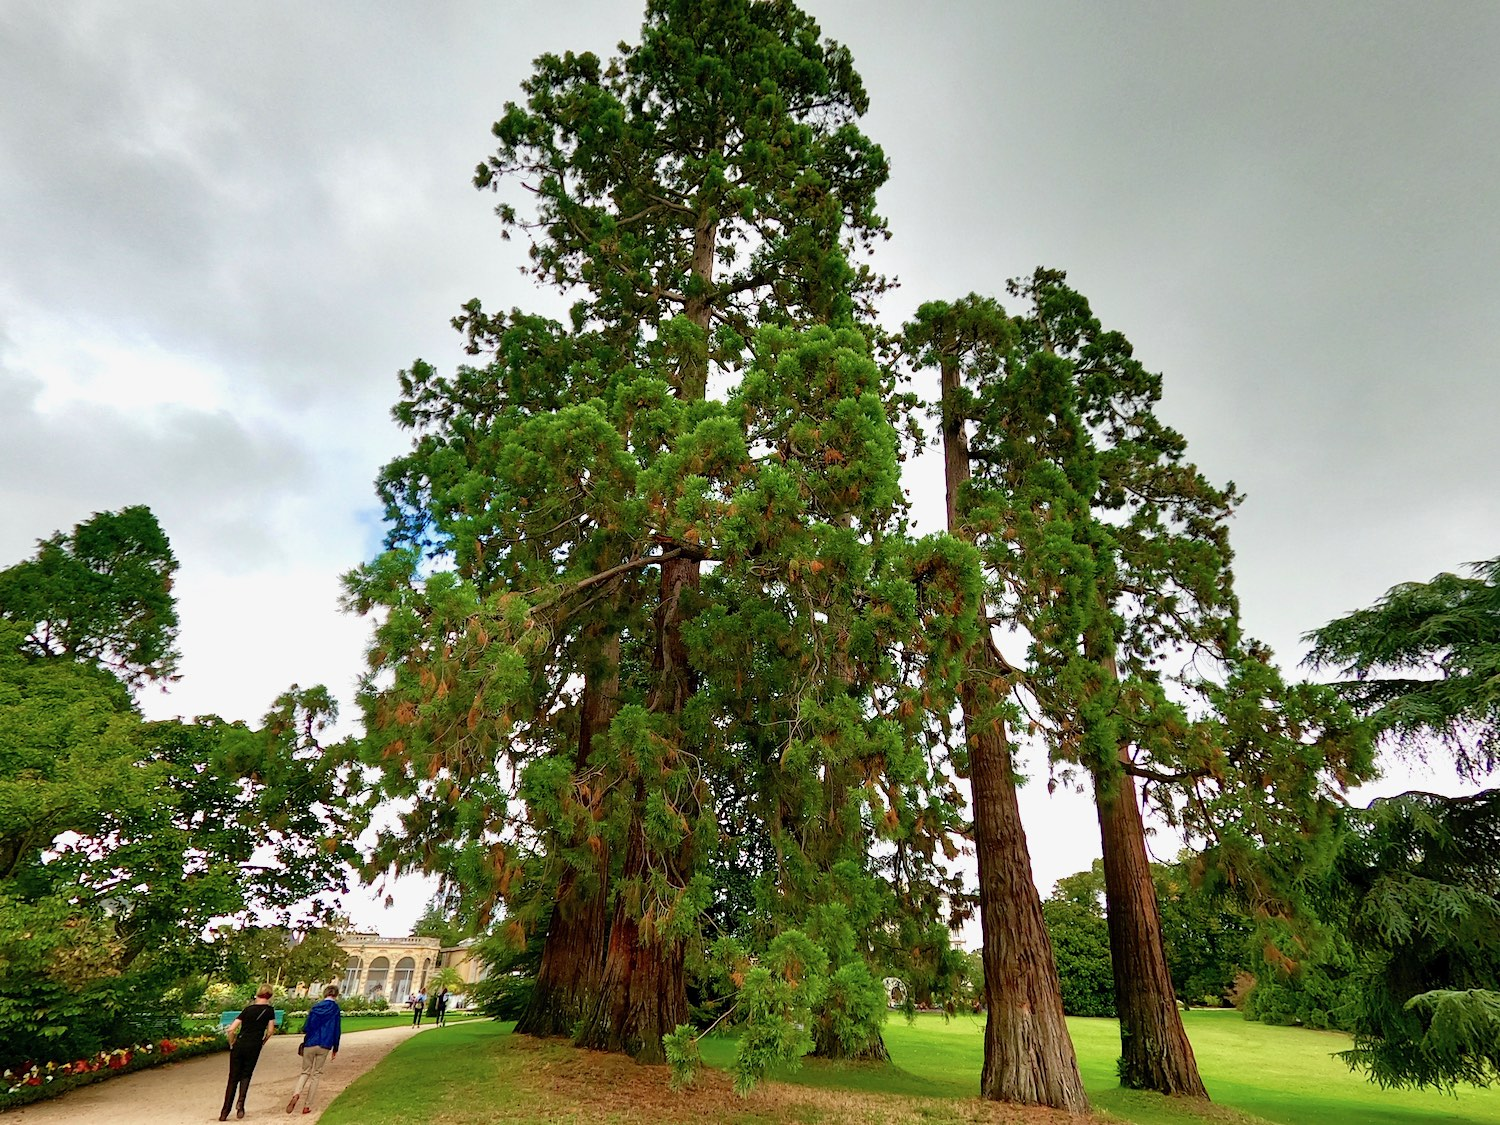 The 5 giant redwoods of the Parc du Thabor